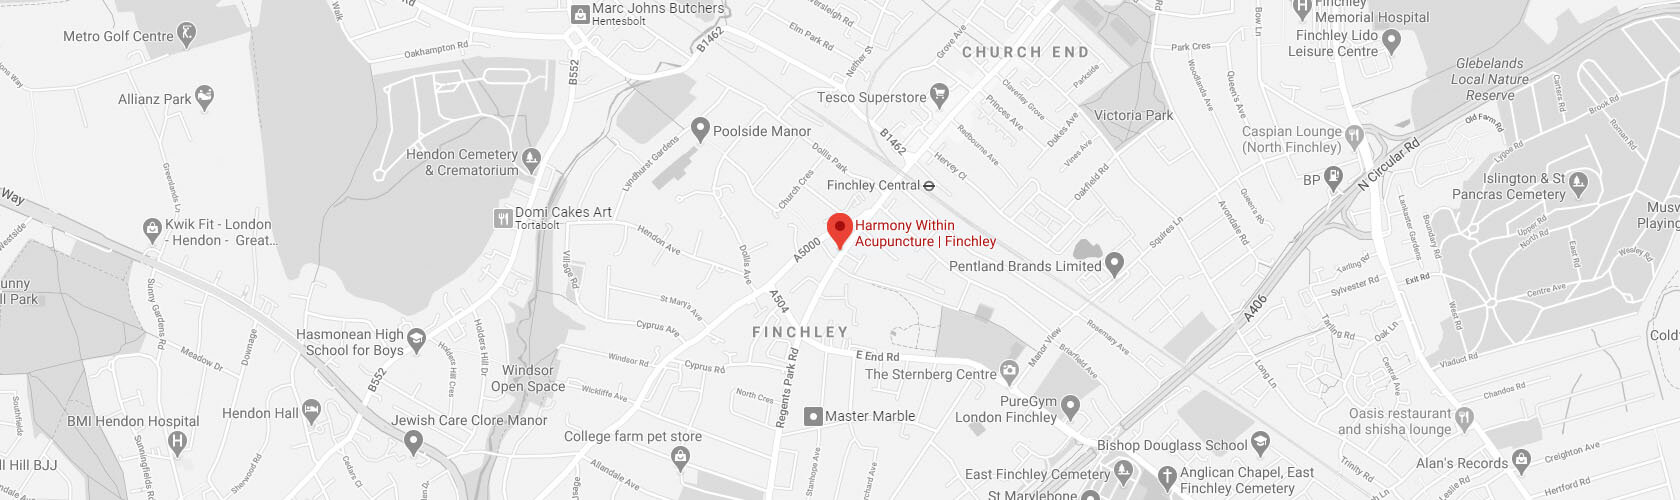 Harmony within Acupuncture | Finchley on google maps